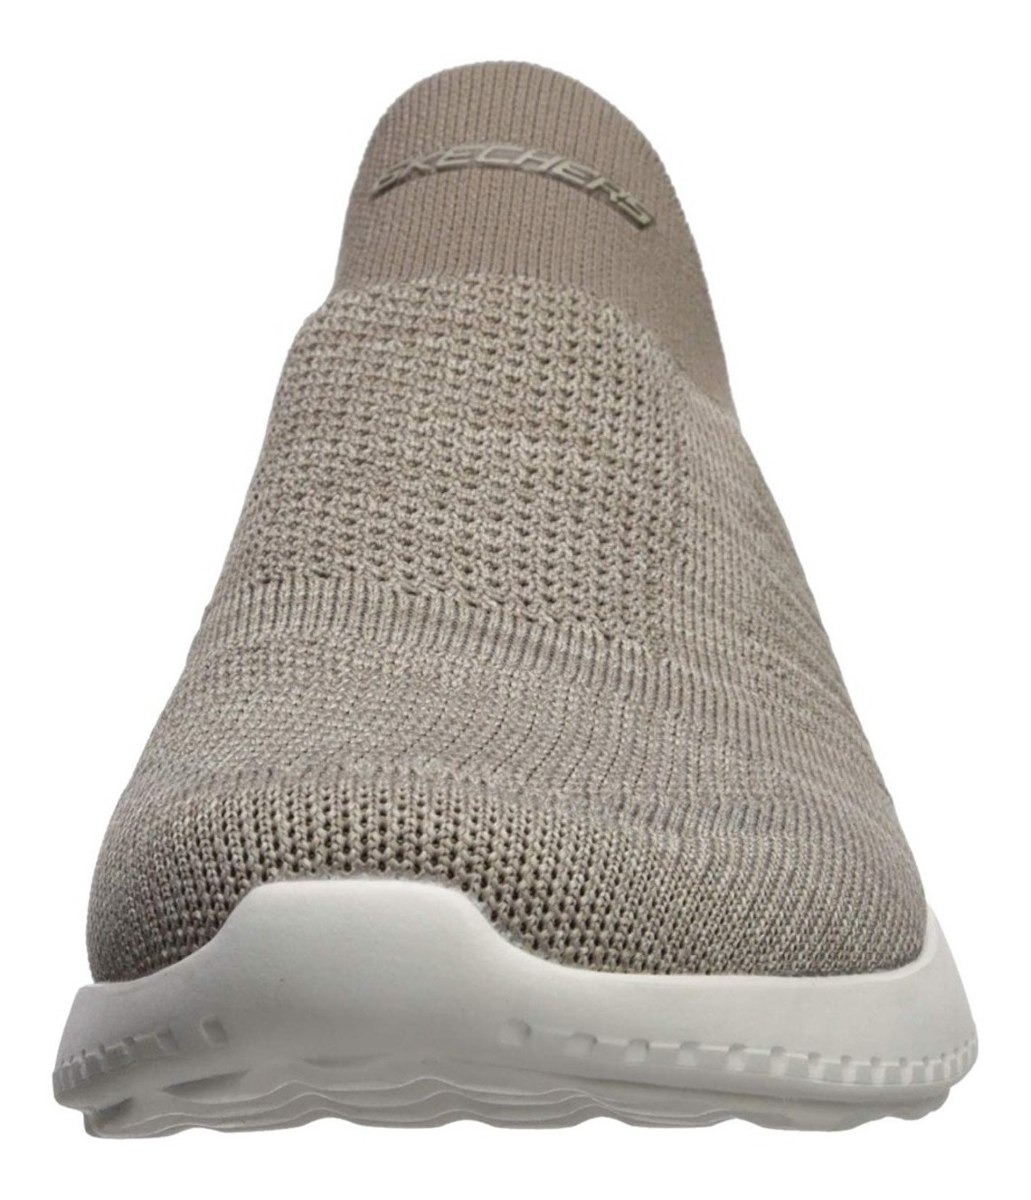 Skechers Zapatos Casuales Hombre Modelo Matera Grafte Taupe